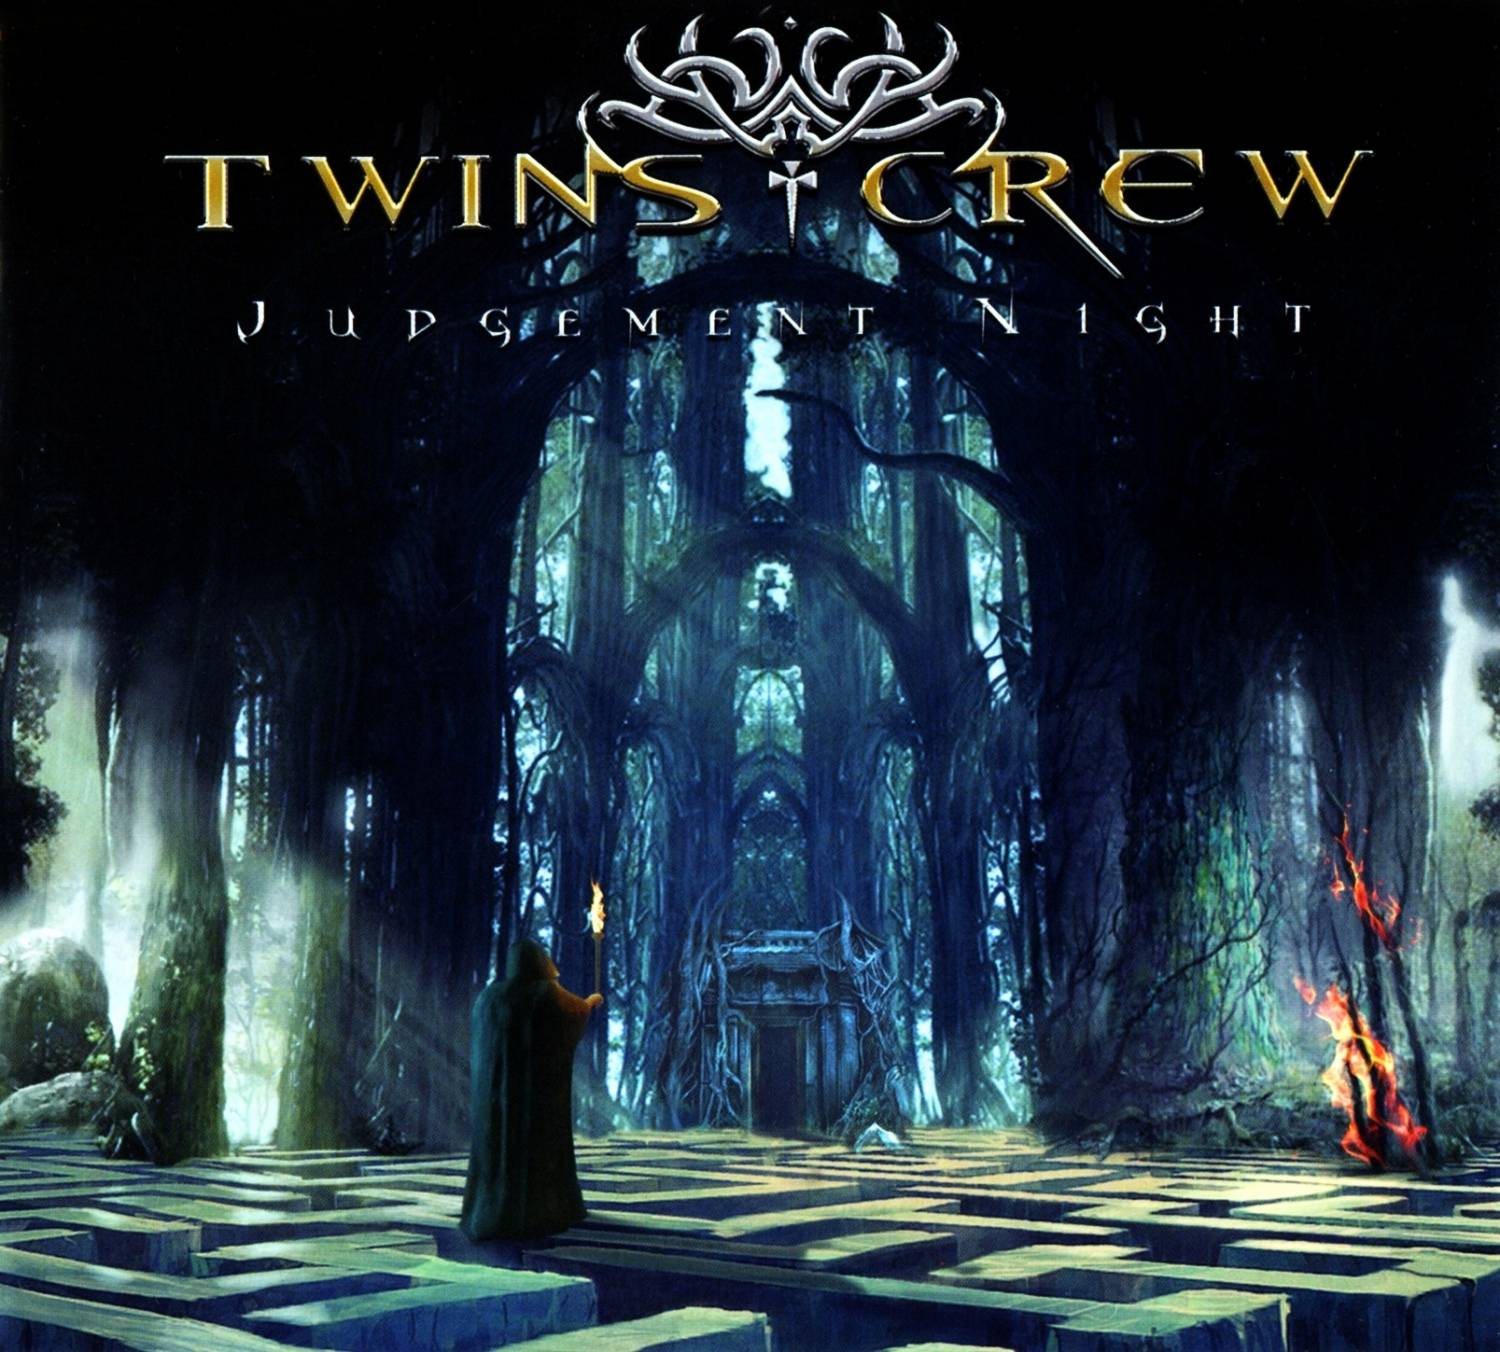 Twins Crew - Judgement Night (2011)